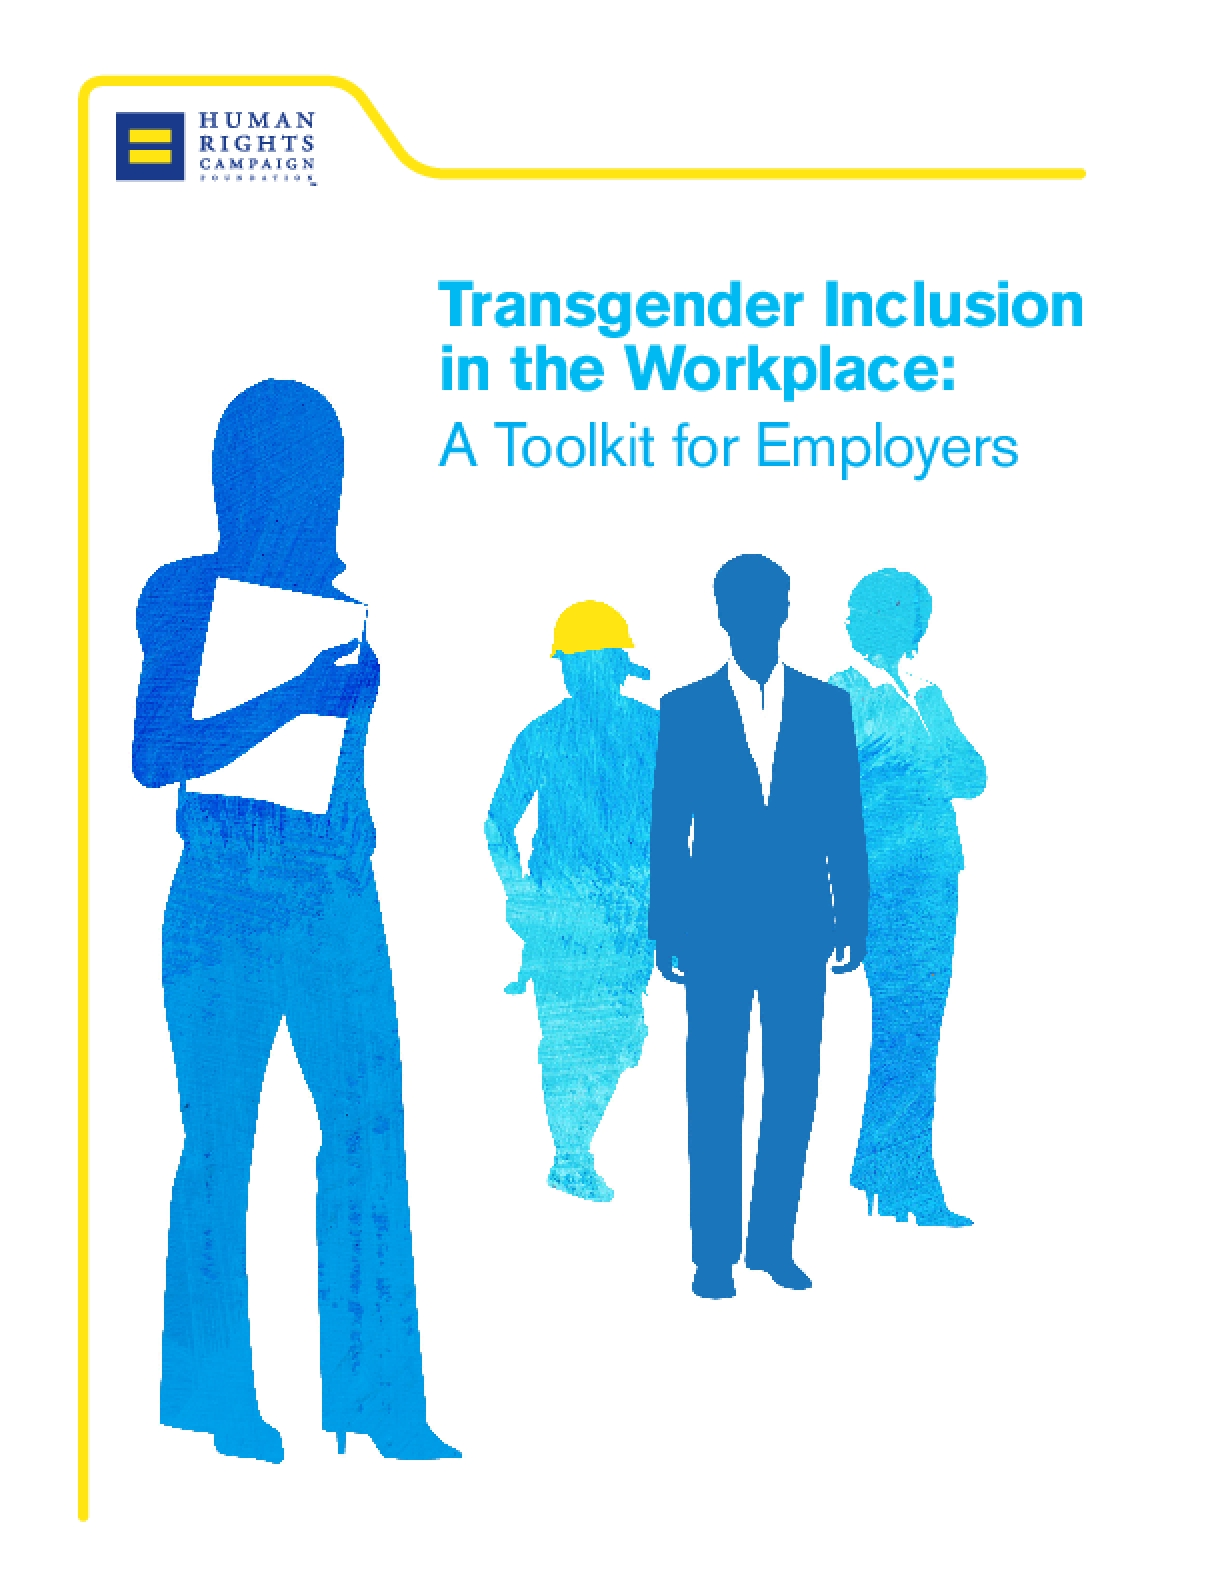 Transgender Inclusion in the Workplace: A Toolkit for Employers